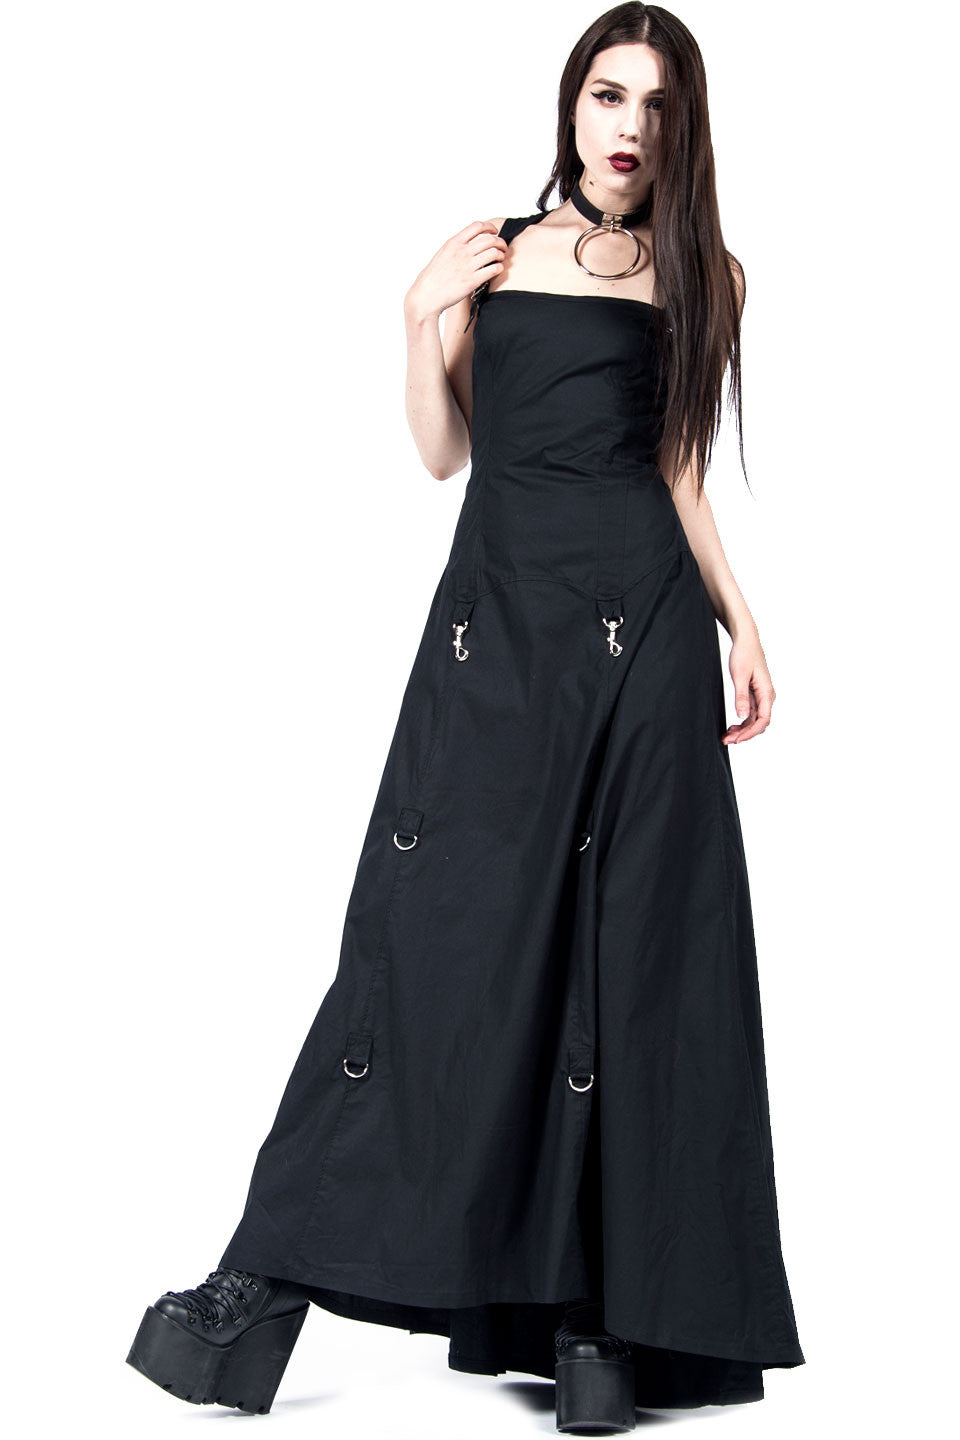 Lip Service Vintage Long Black Goth Gown